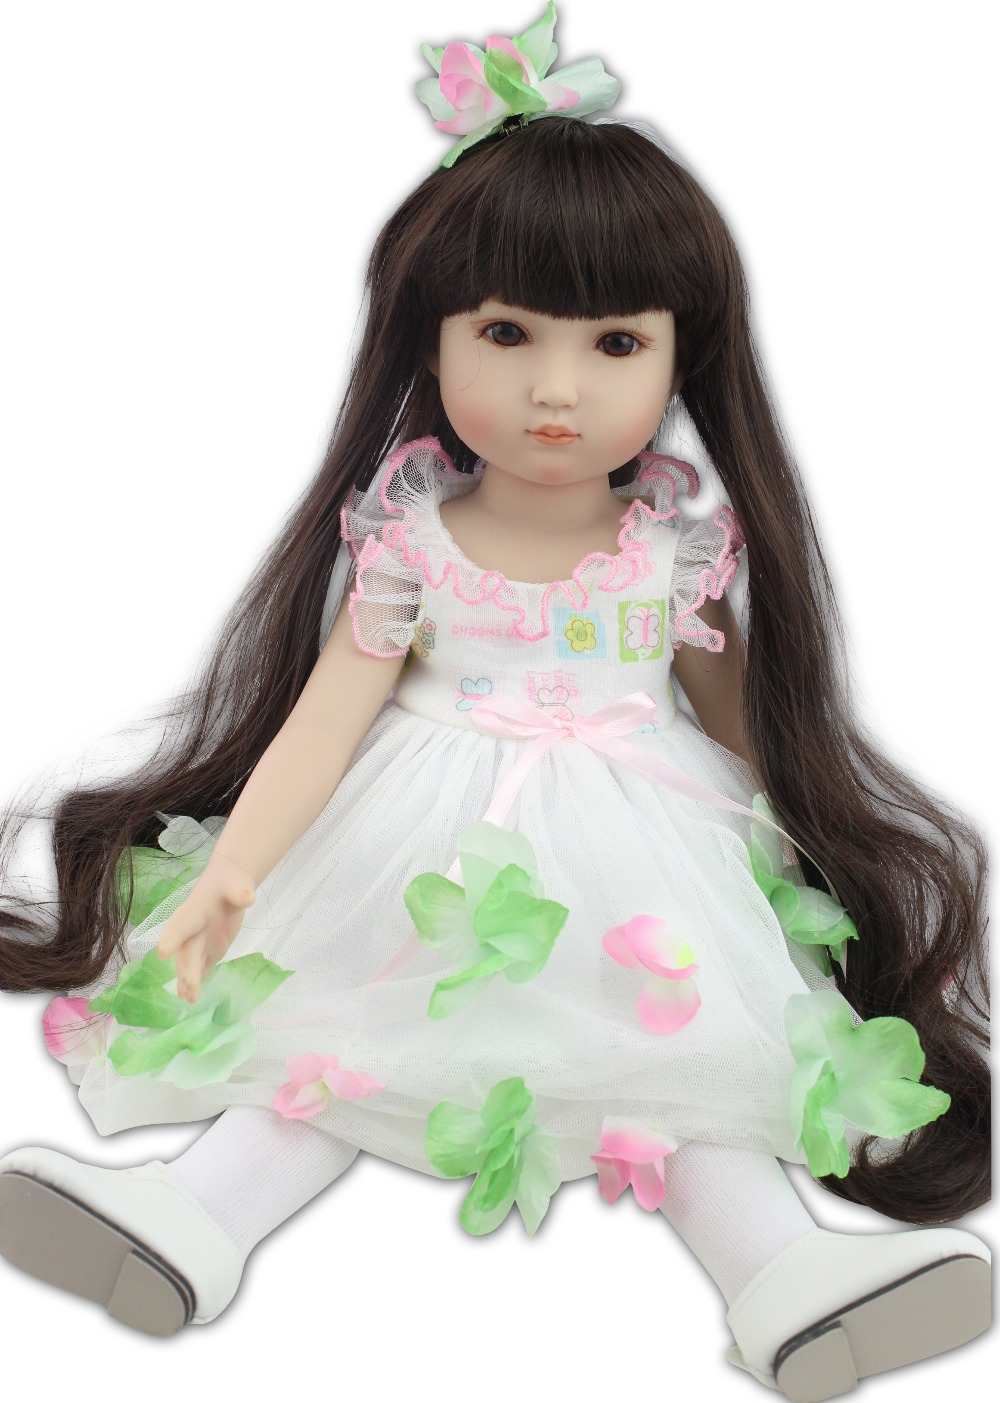 New design most popular 18inches fashion play doll education toy for girls birthday GiftNew design most popular 18inches fashion play doll education toy for girls birthday Gift